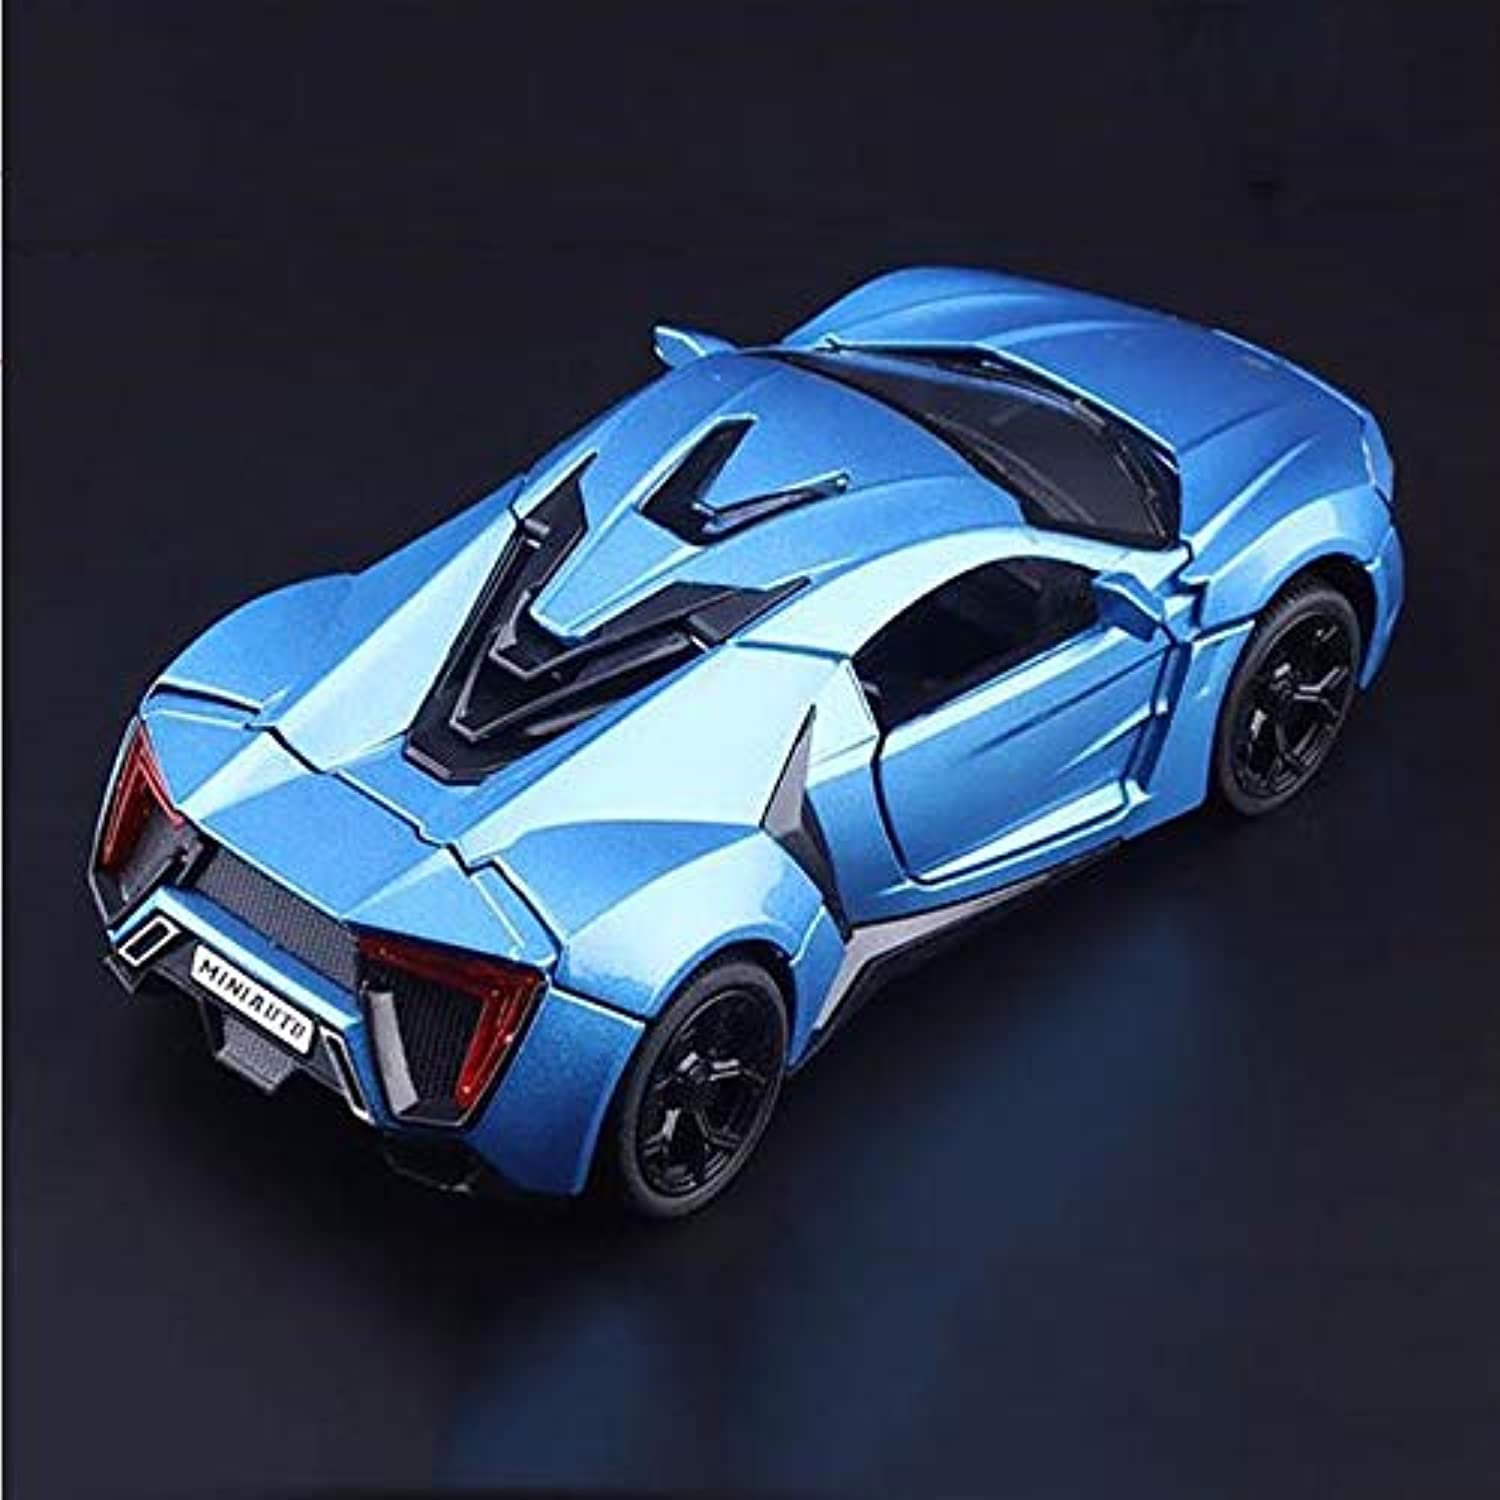 Generic 1 32 Scale Diecast Alloy Car Model Toys bluee Lykan Hypersport Car Model with Light & Sound Gifts Collections